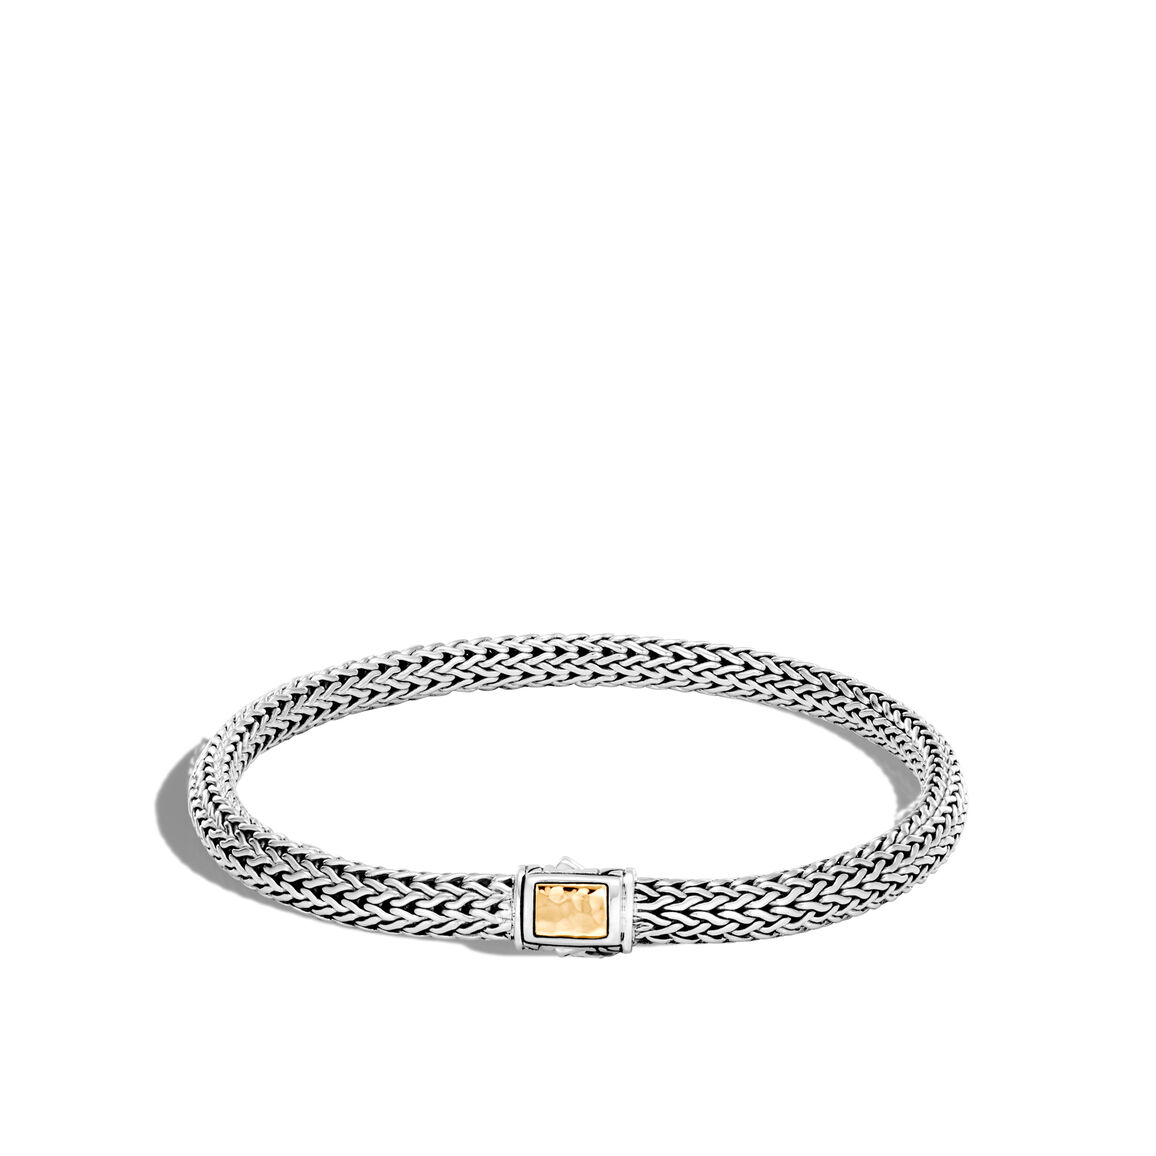 Classic Chain 5MM Hammered Clasp Bracelet, Silver, 18K Gold